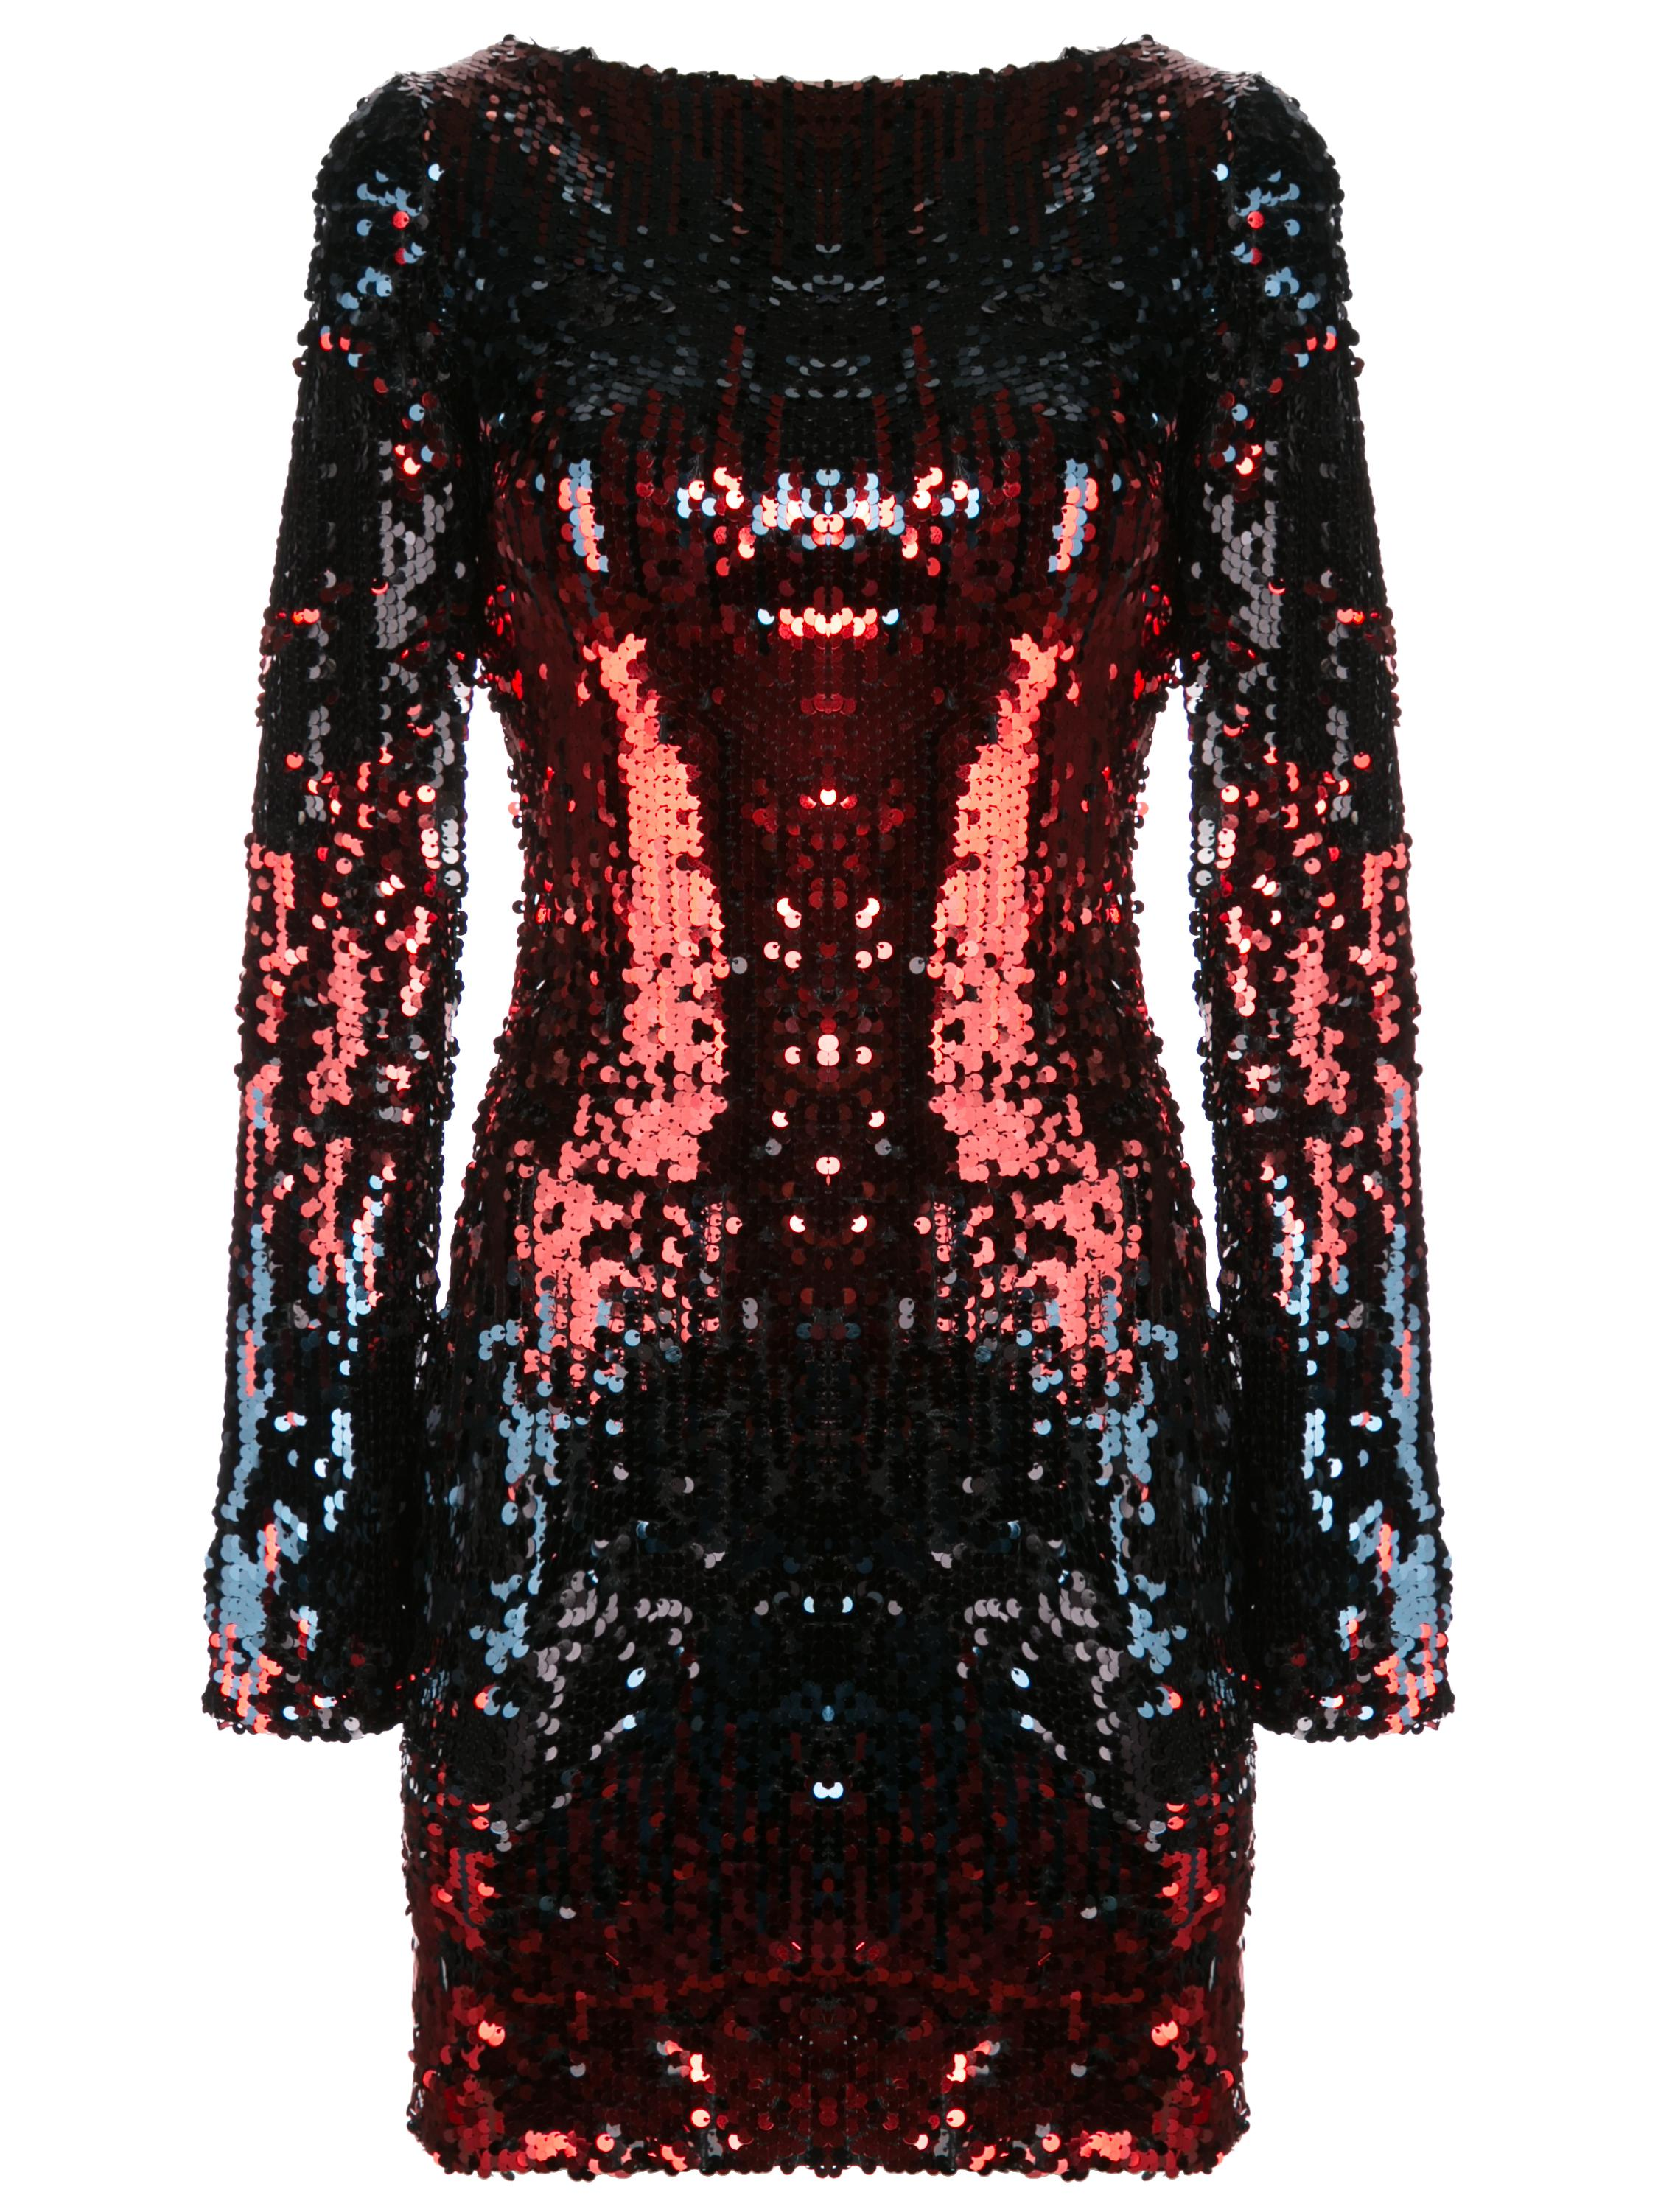 Long Sleeve Sequin Short Dress Item # LORENA5-DO10